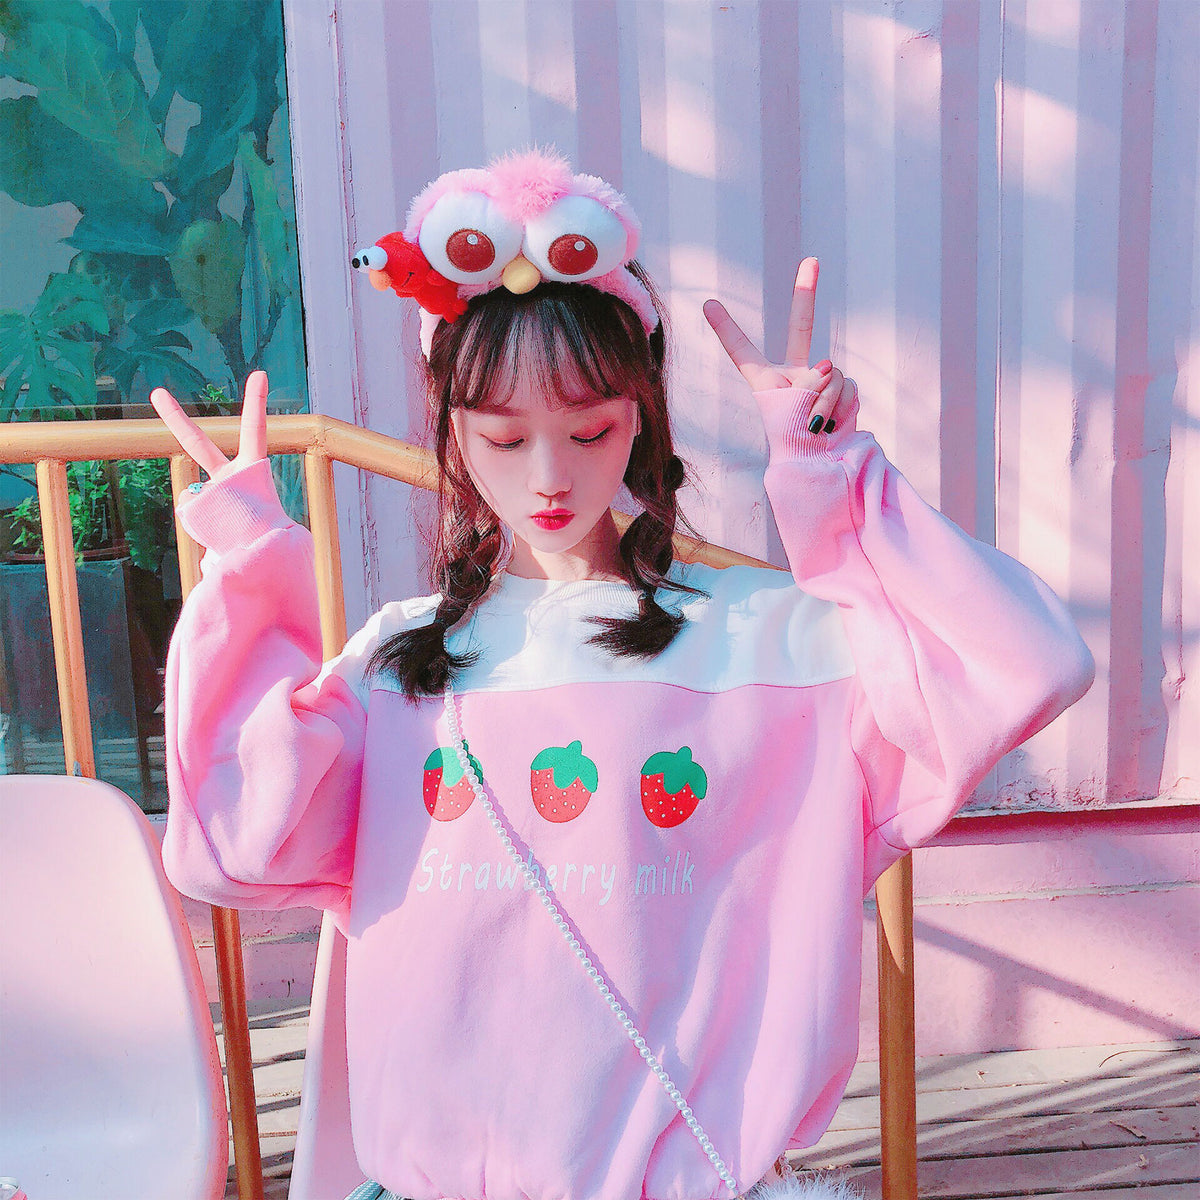 Cute Strawberry Sweatshirt yc21026